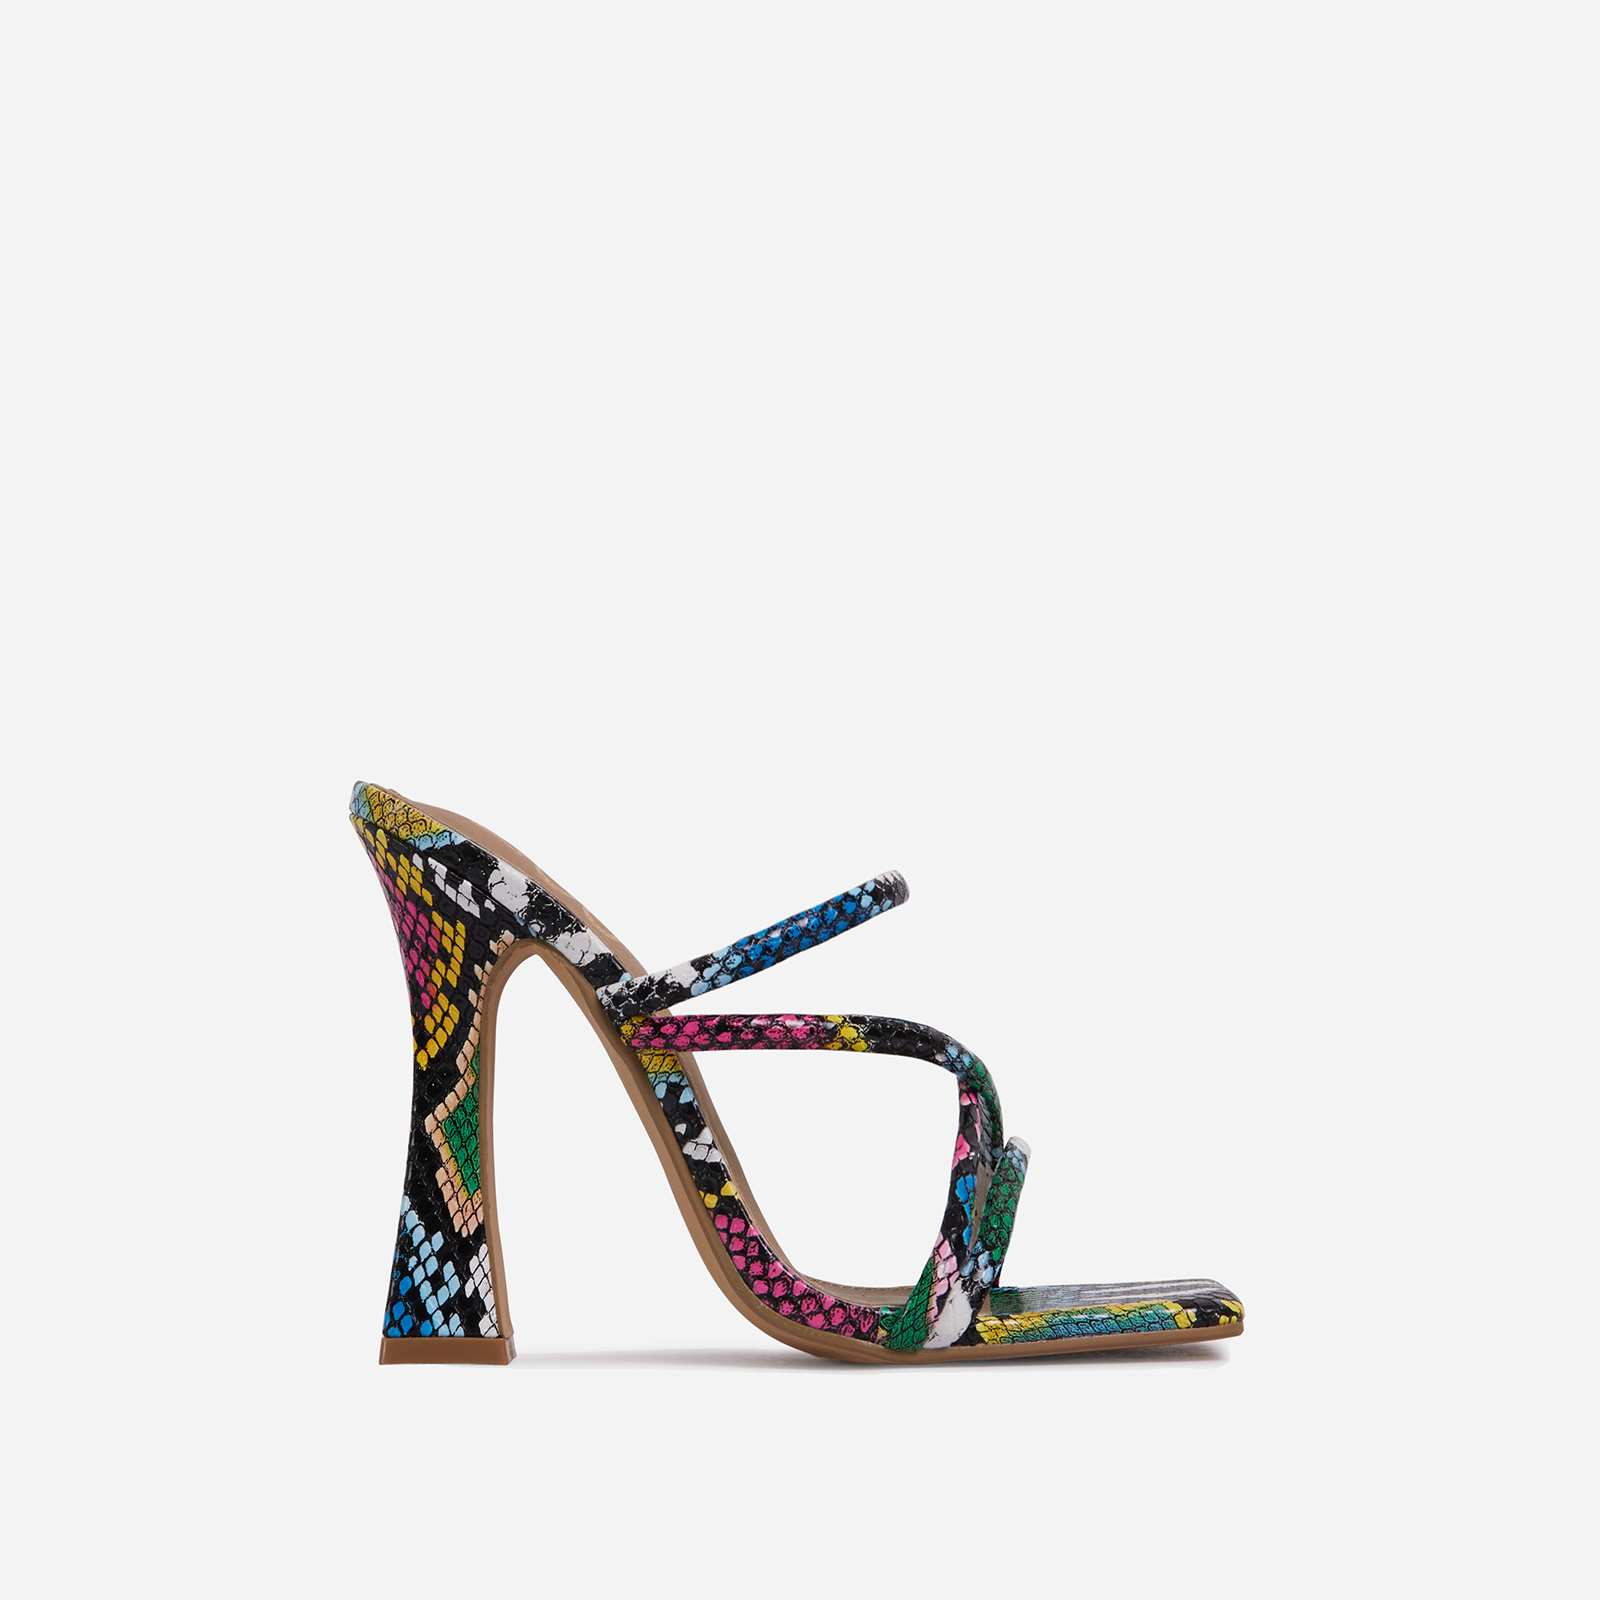 Wonder Strappy Detail Square Toe Flared Block Heel Mule In Multi Snake Print Faux Leather